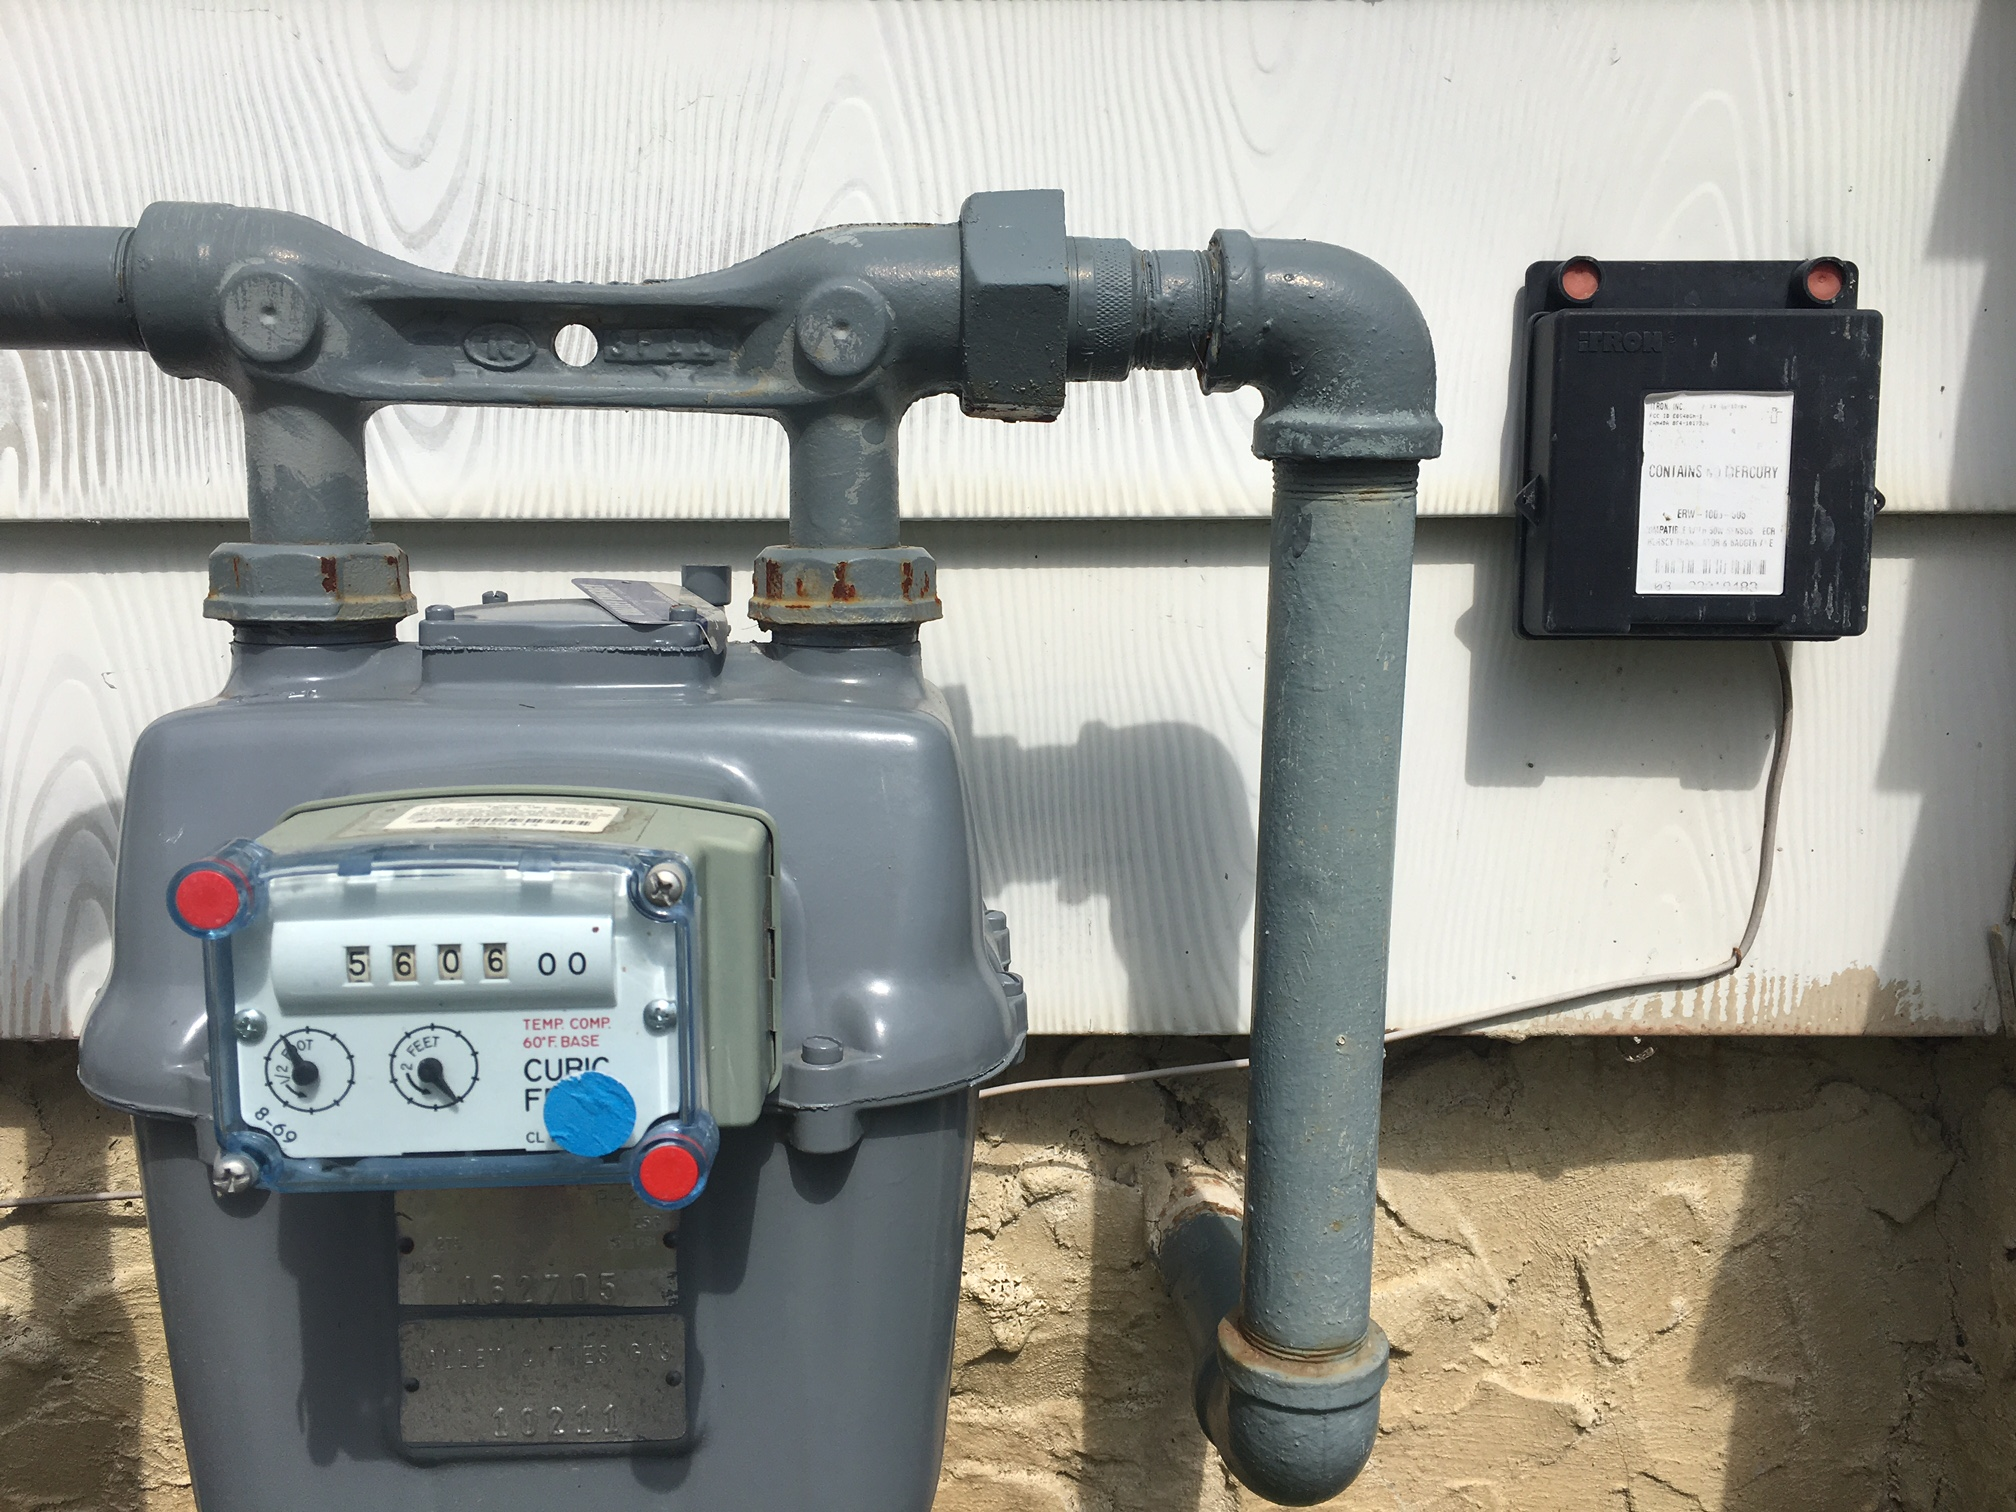 Here's a photo of a smart gas meter which thankfully only transmits a signal once a month, which makes it different than a typical smart meter, which transmits at regular and frequent intervals throughout the course of the day and night.